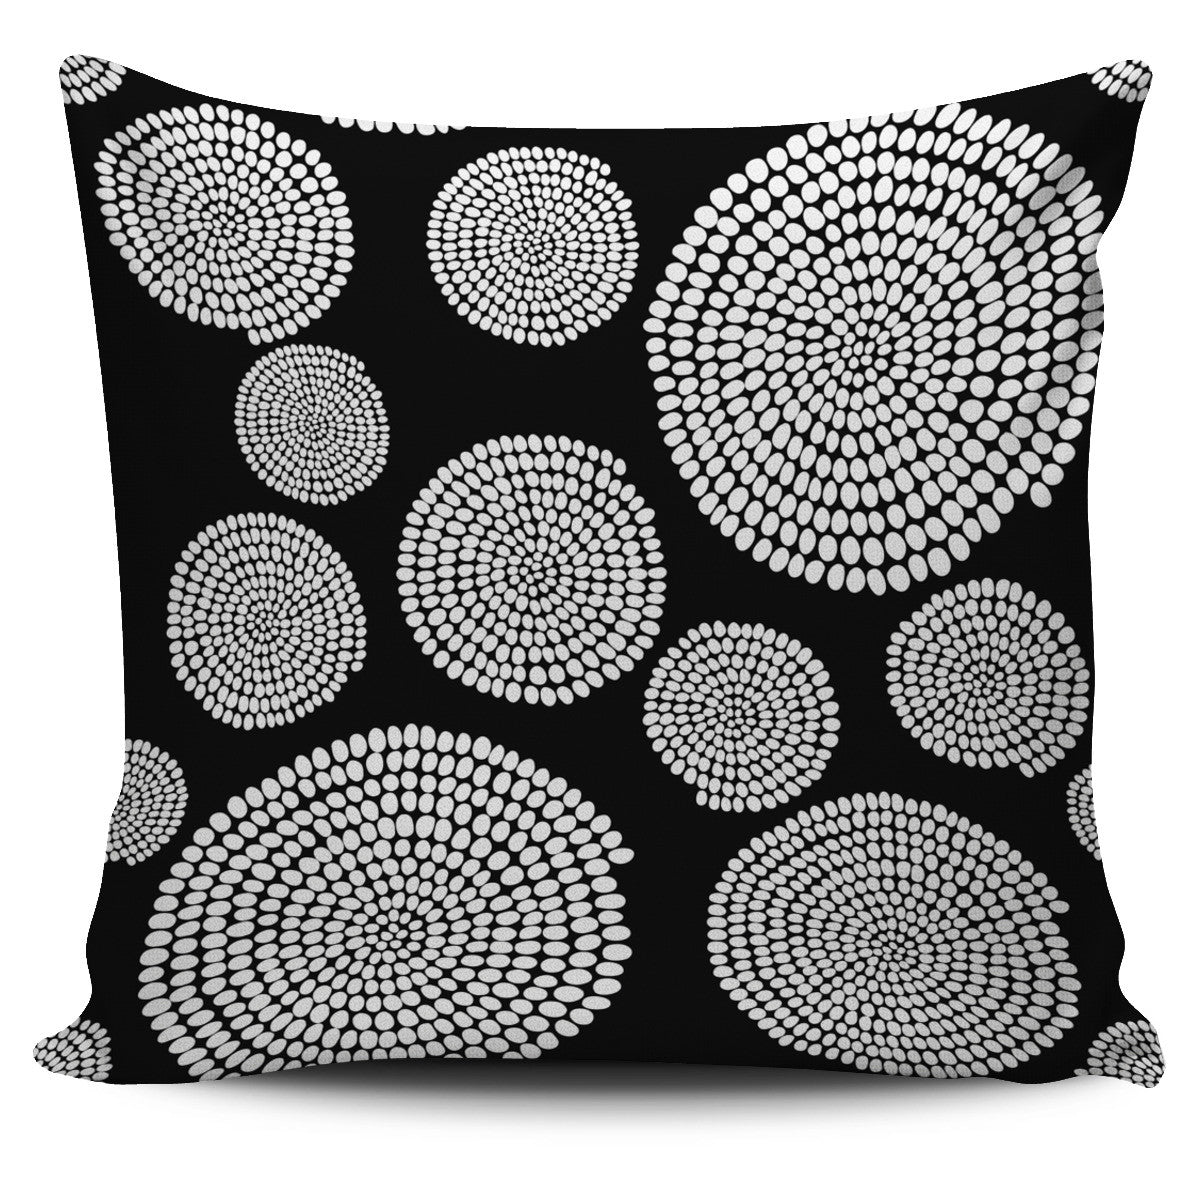 African Swirl Pillow Cover